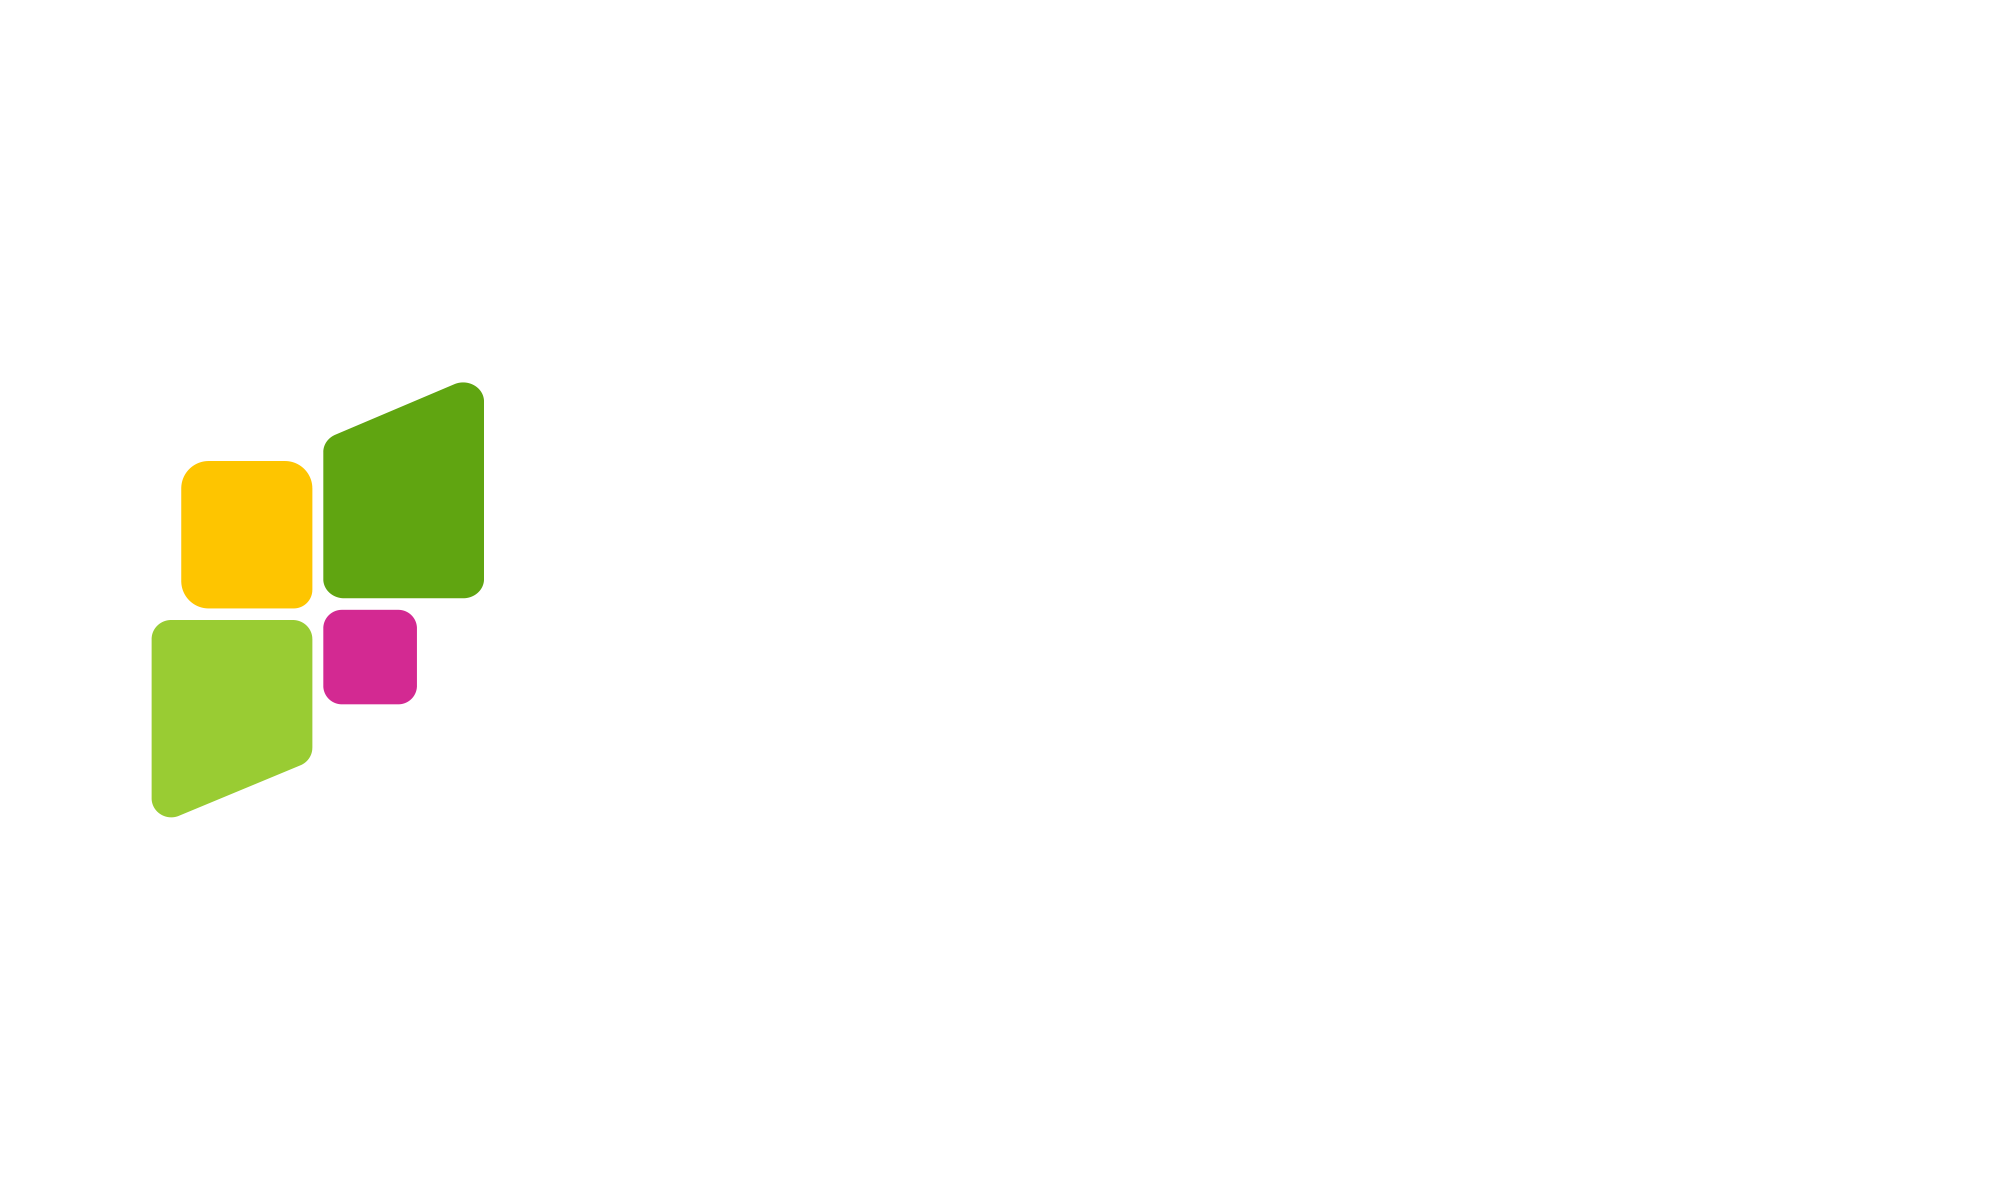 AppsGeyser - How to Create Apps for Android without Coding?